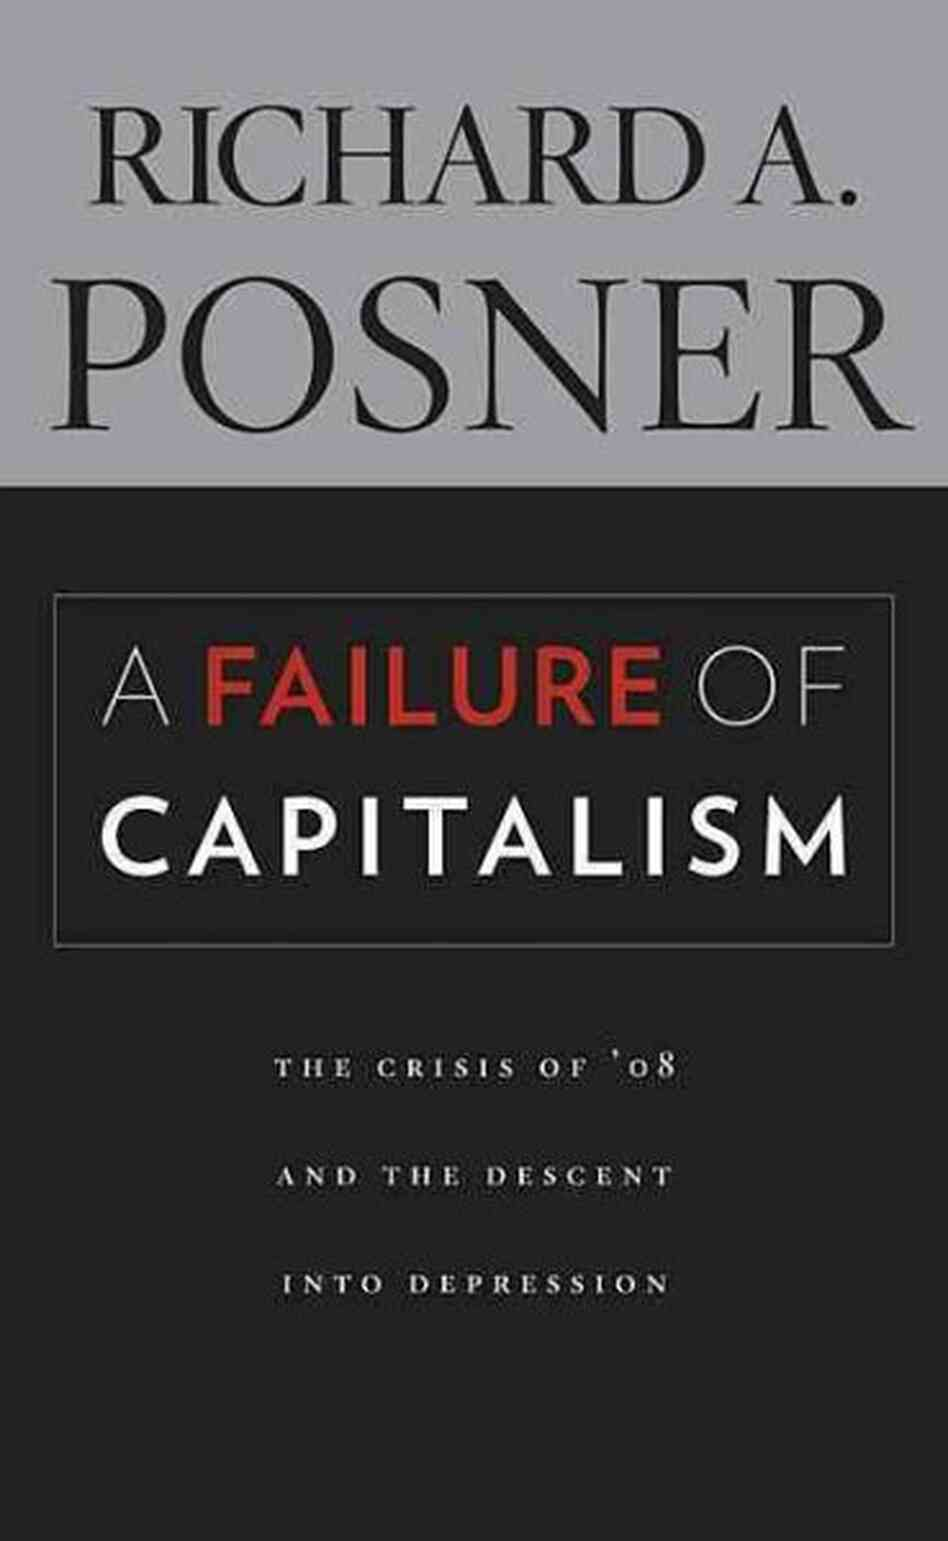 A Failure of Capitalism